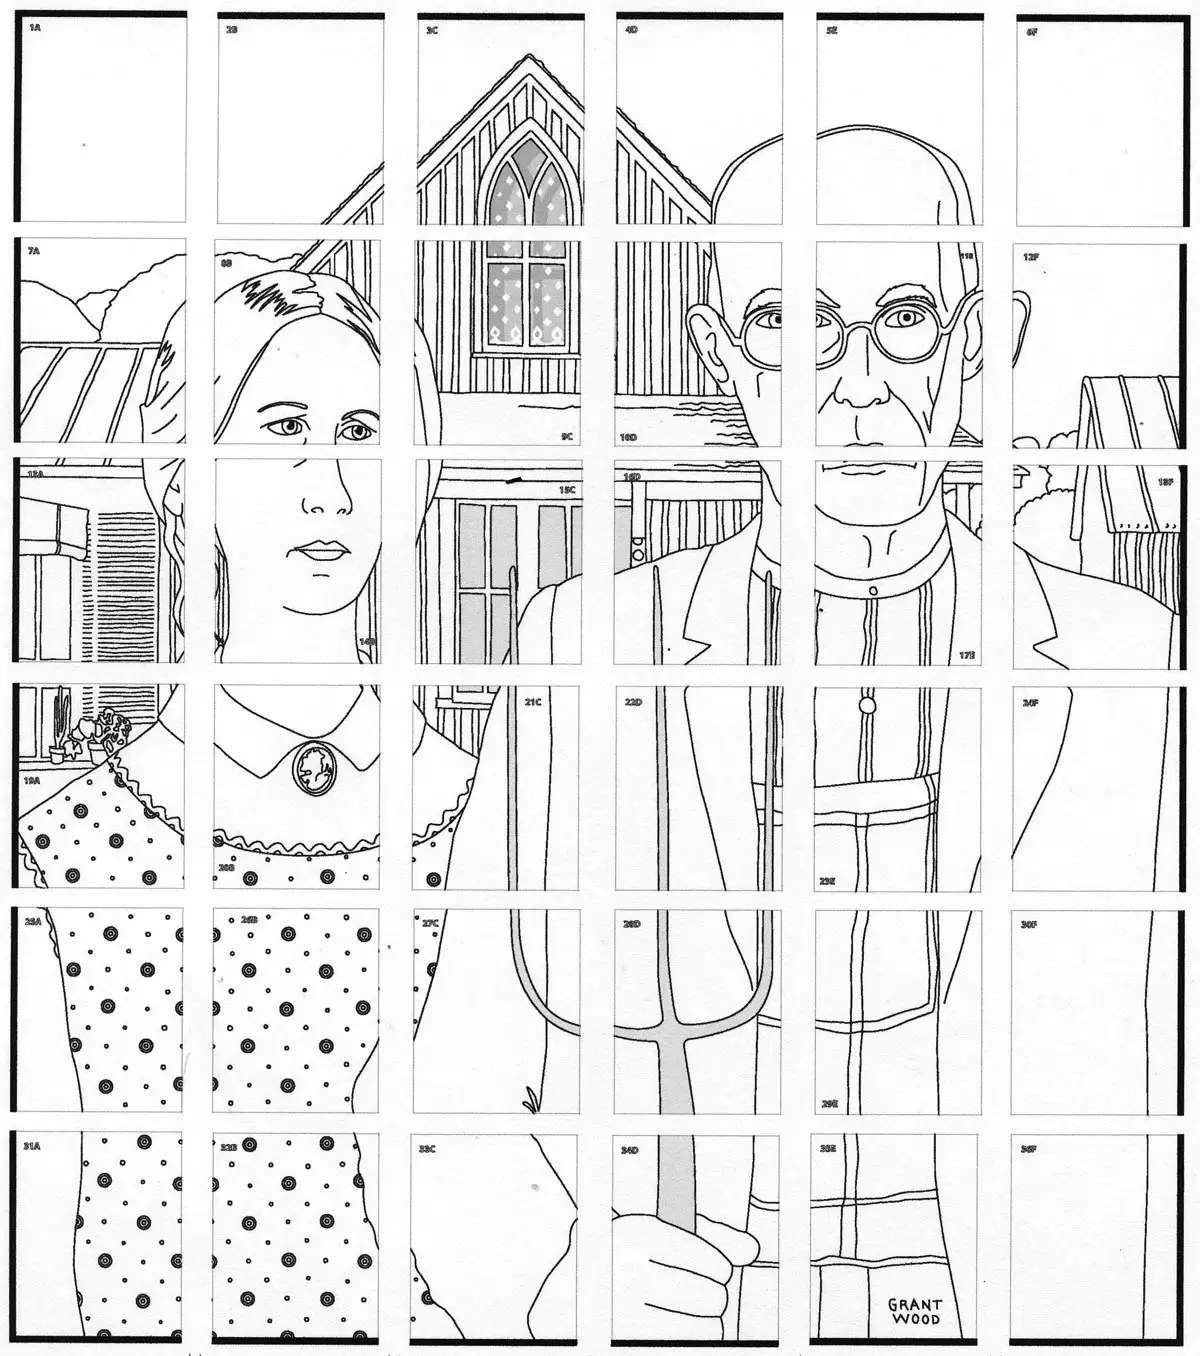 American Gothic Mural Art Projects For Kids